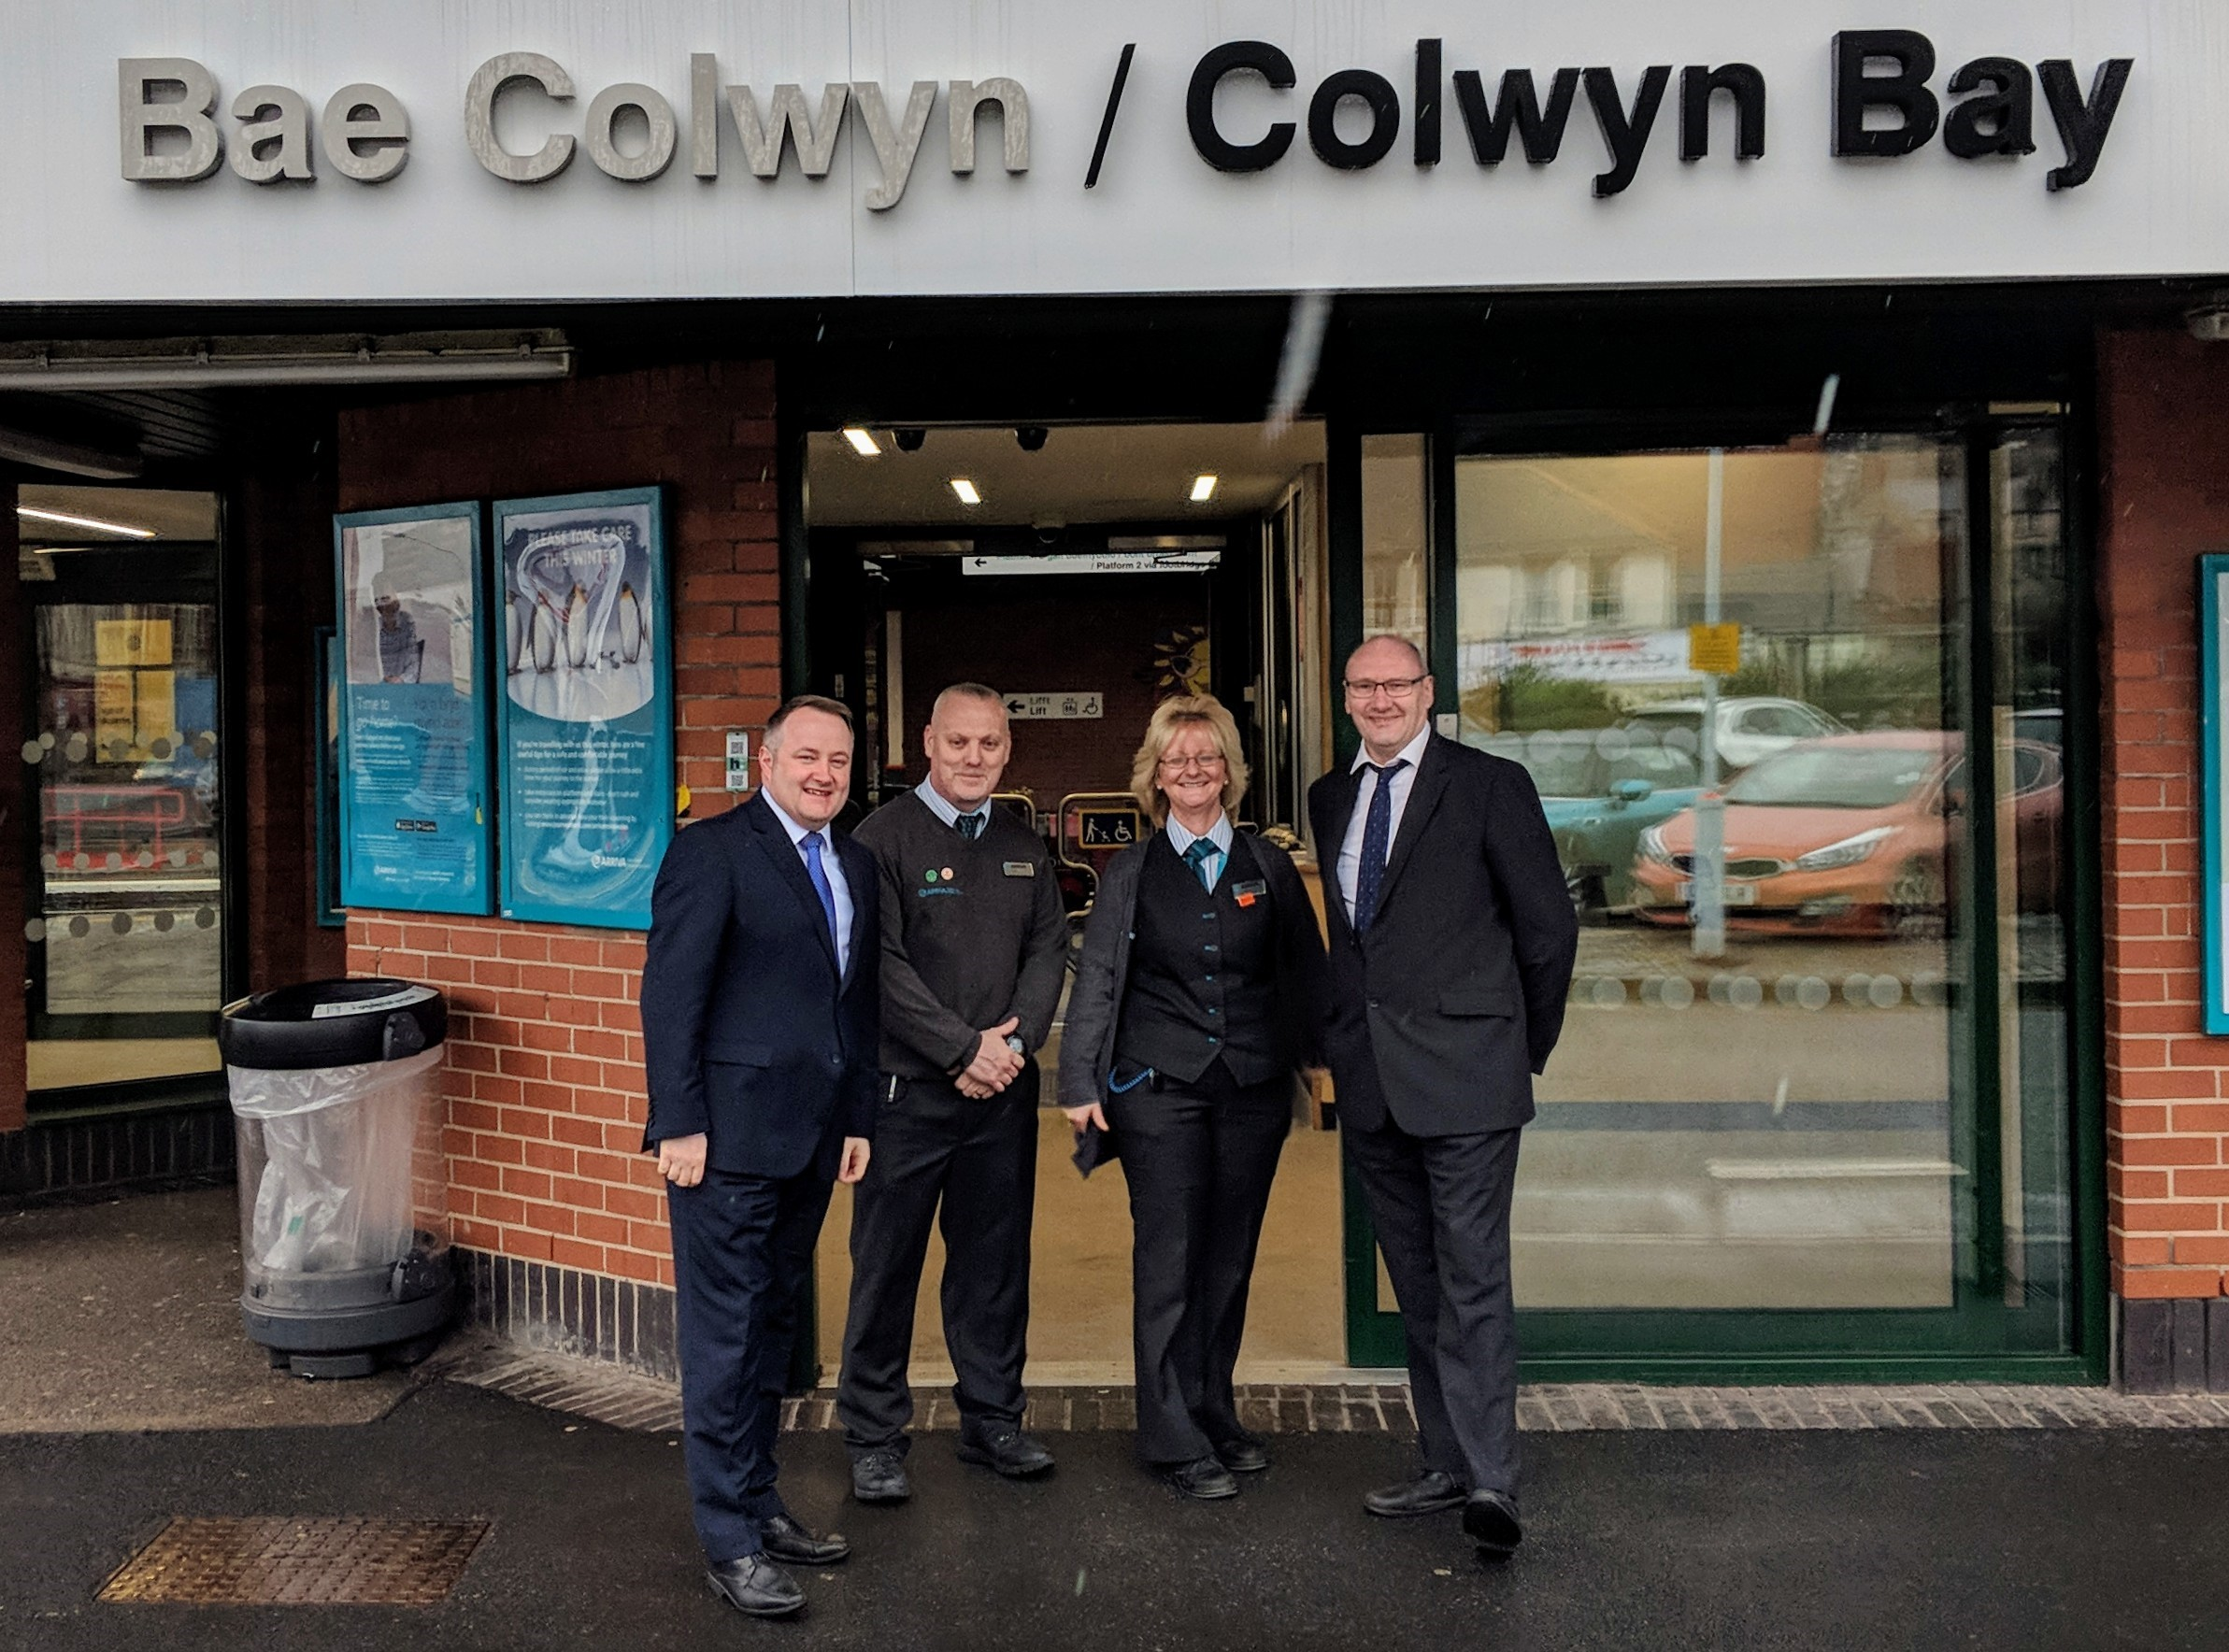 Darren Millar with Dave Graham, Lynda Ogden, Scott Barlow and Ben Davies at Colwyn Bay Train Station